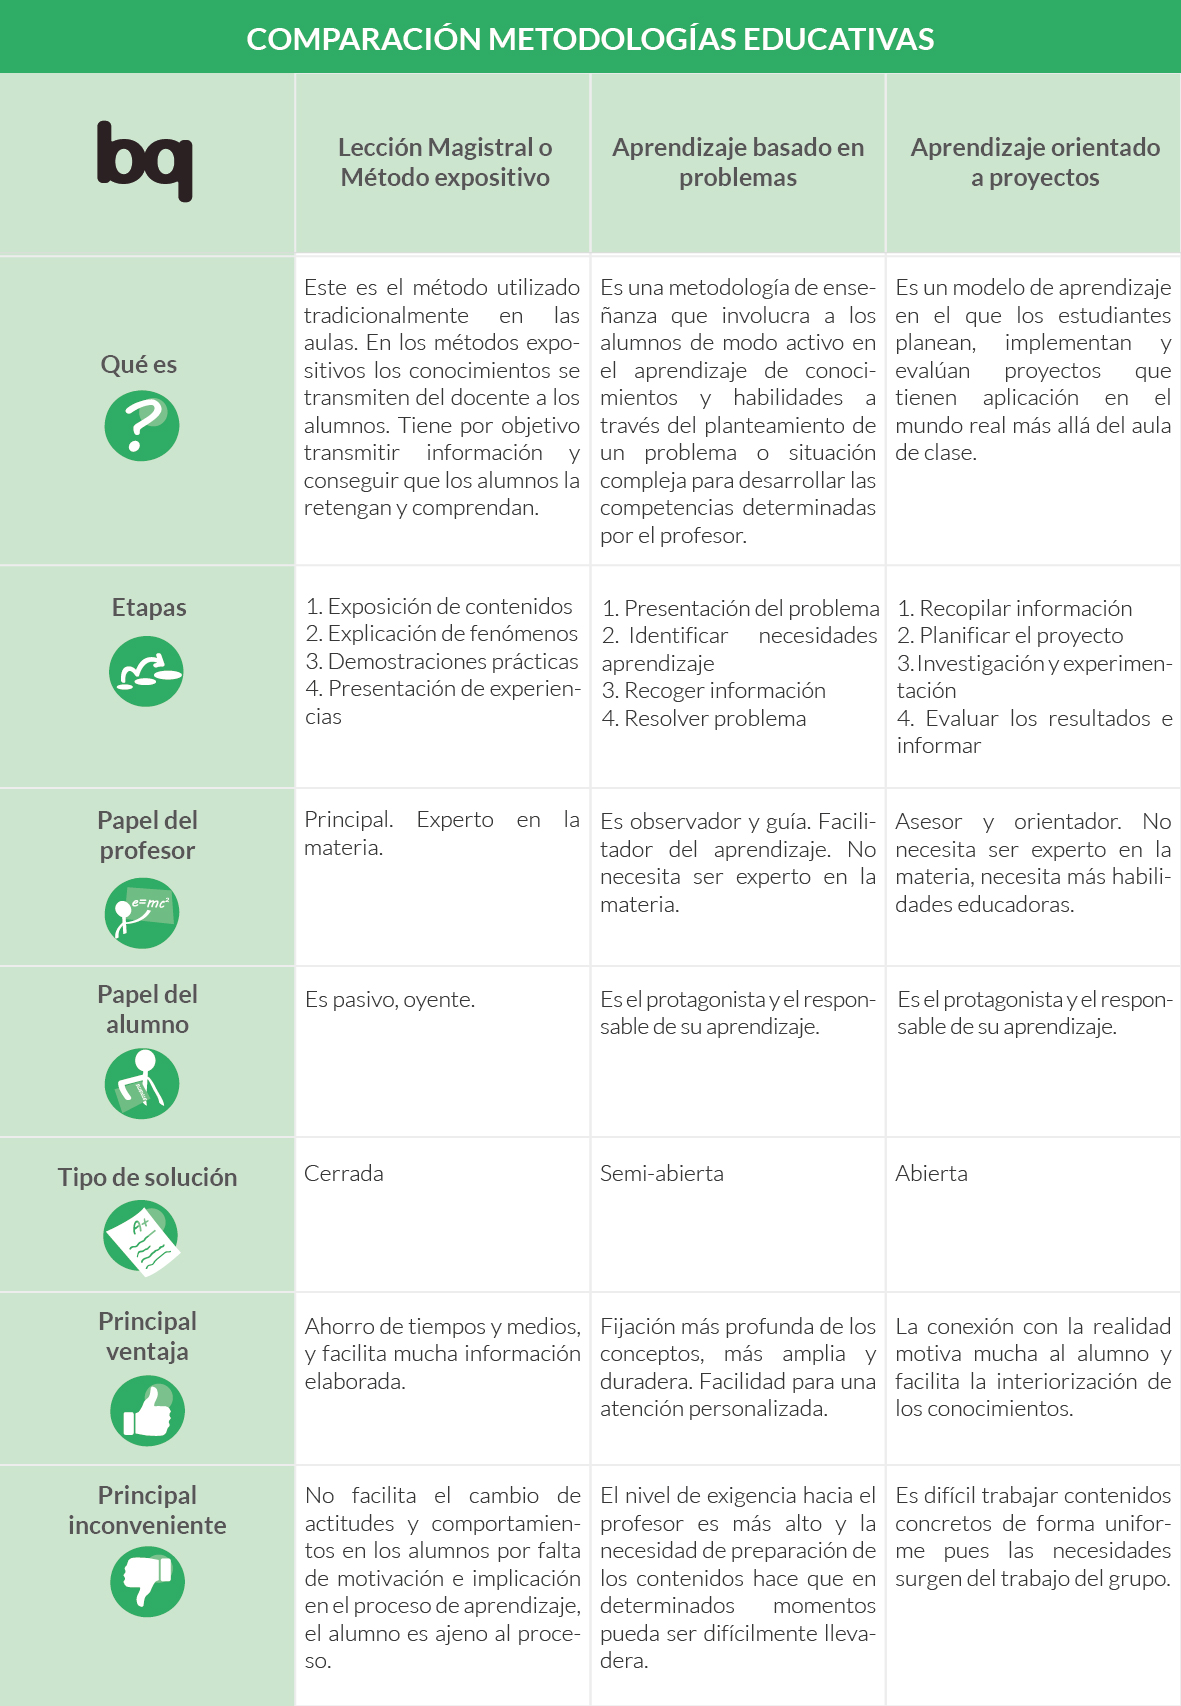 Tabla Comparación Metodologías Educativas